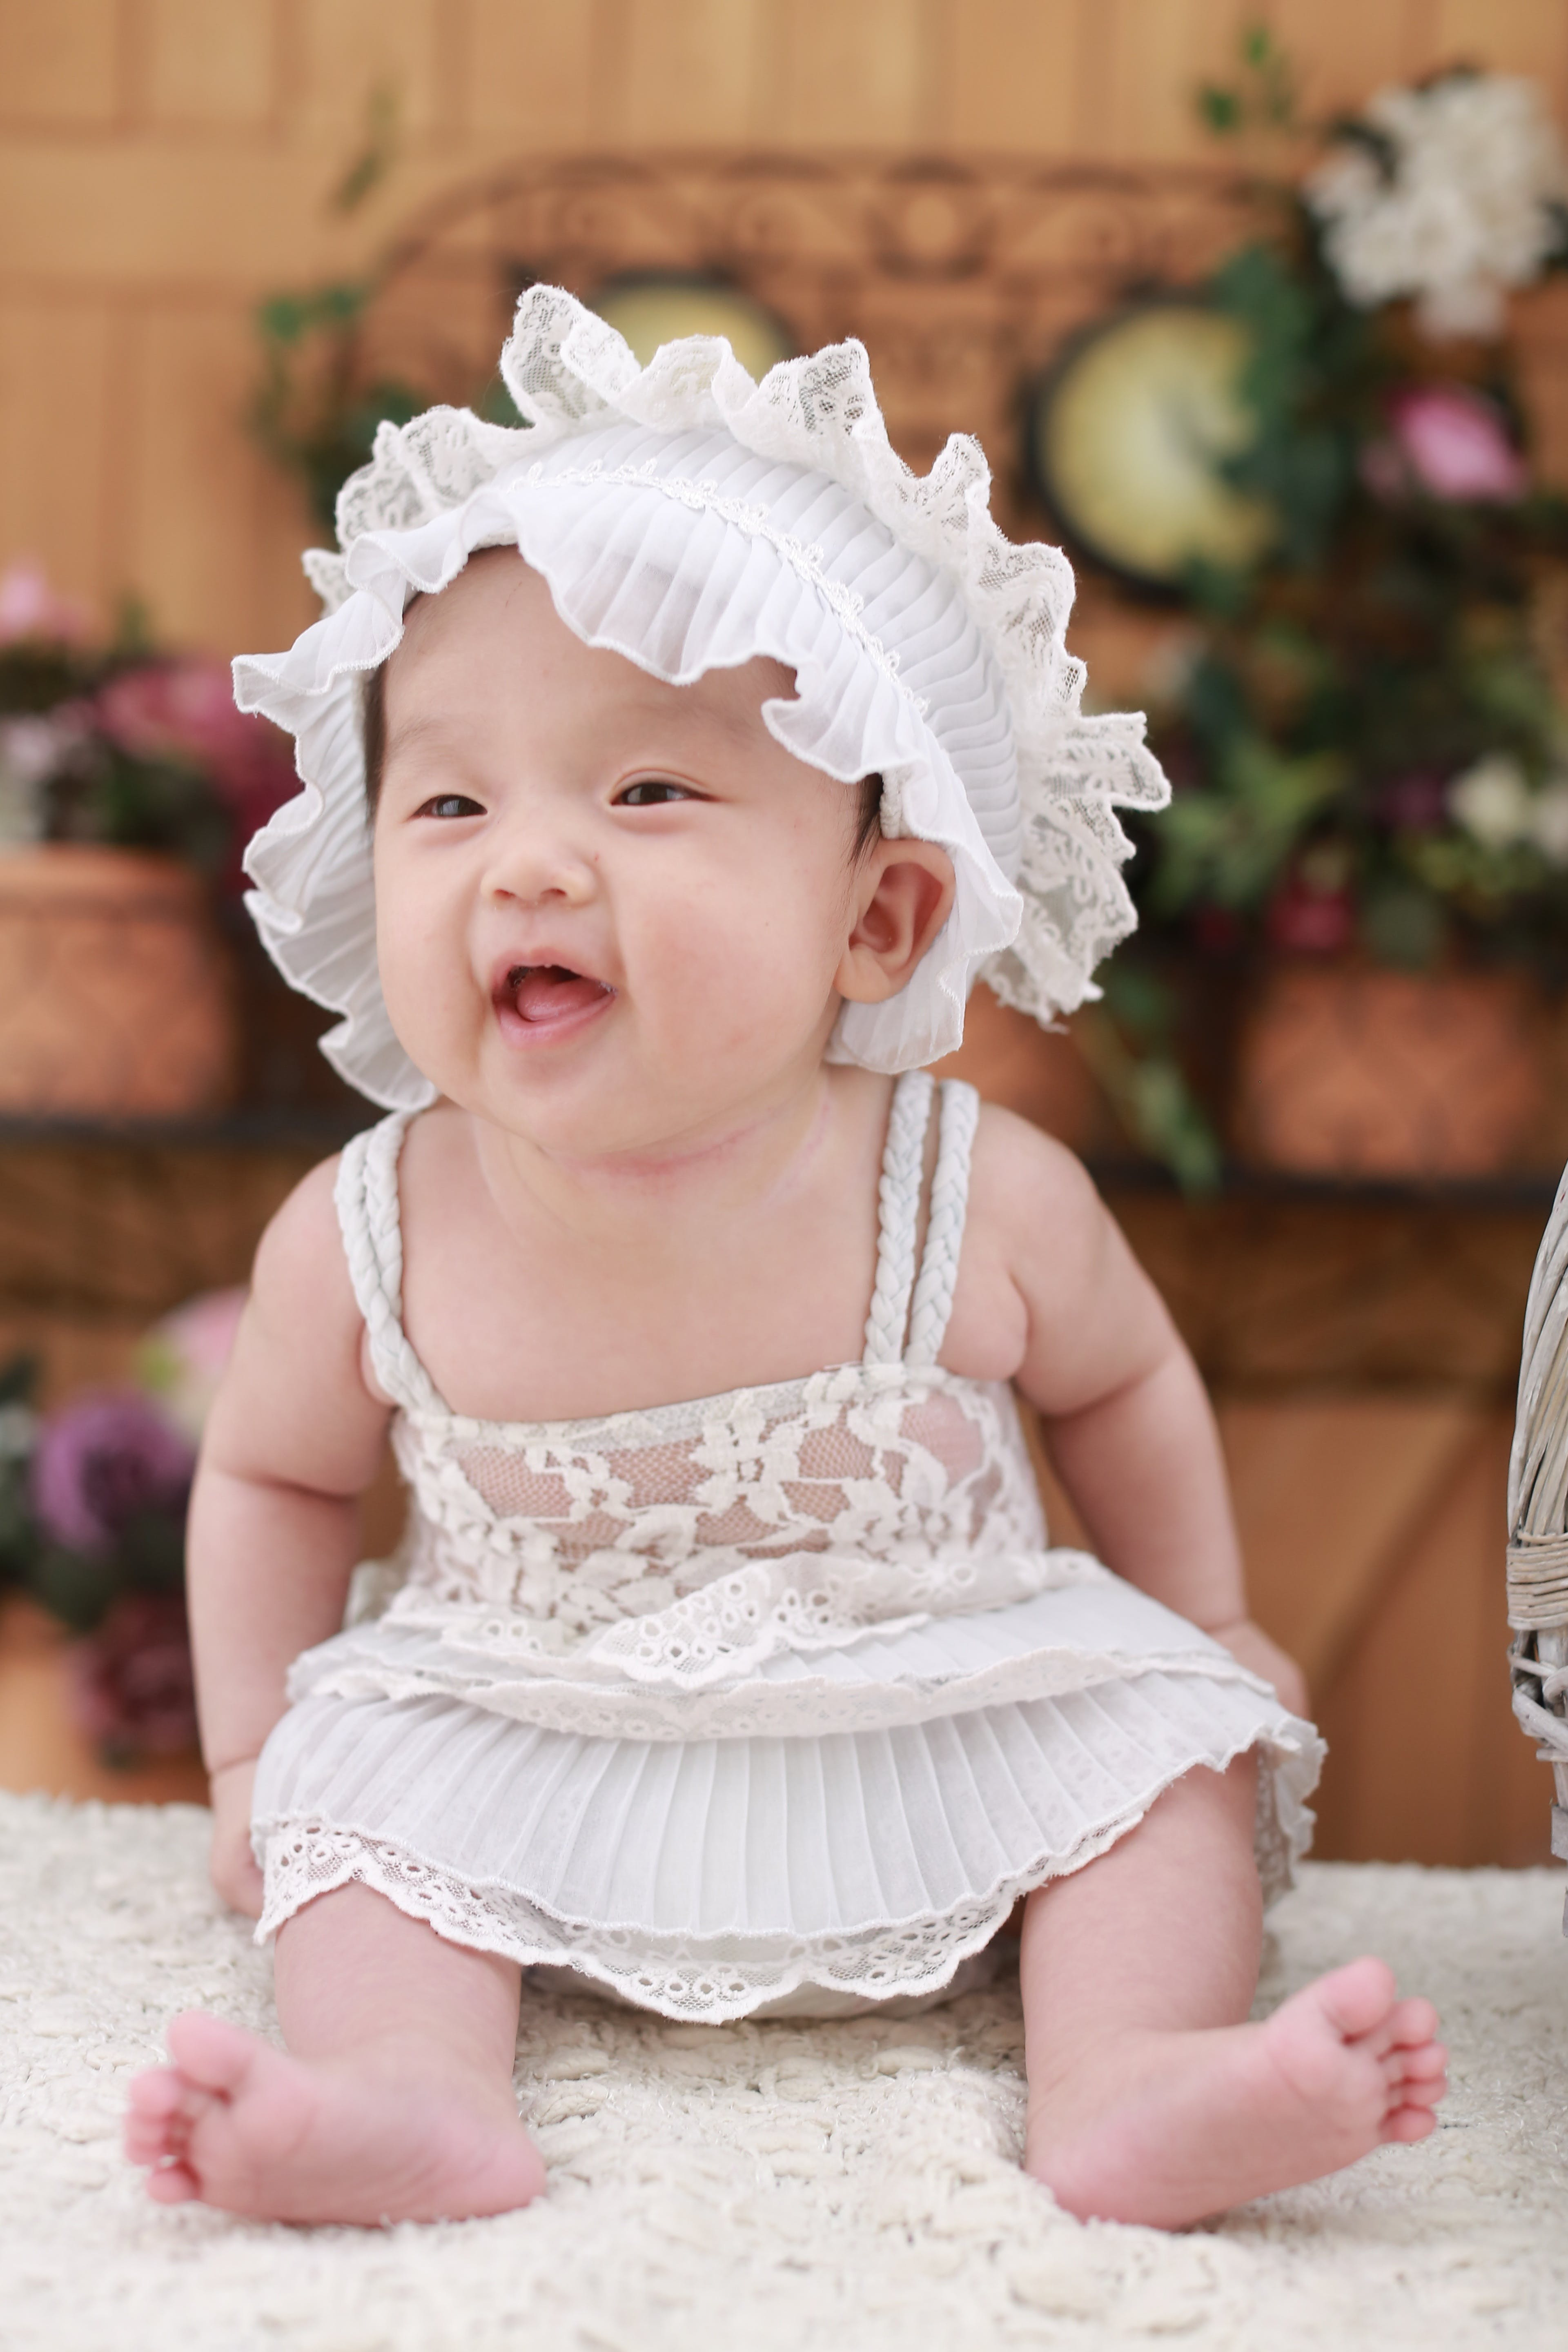 Baby in White Dress With White Headdress